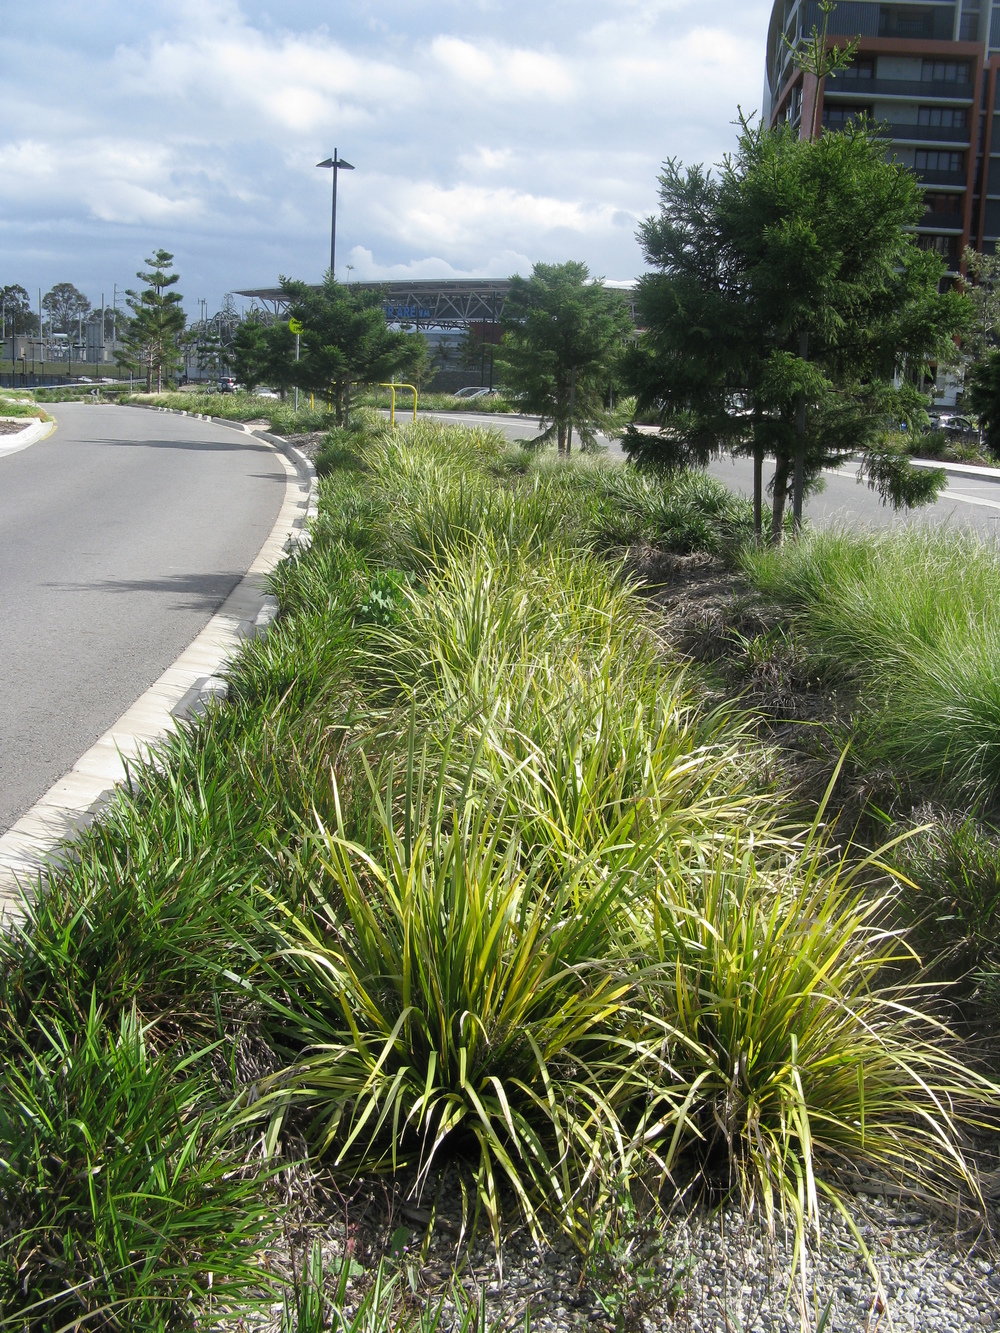 King Arthur Tce Bioretention System